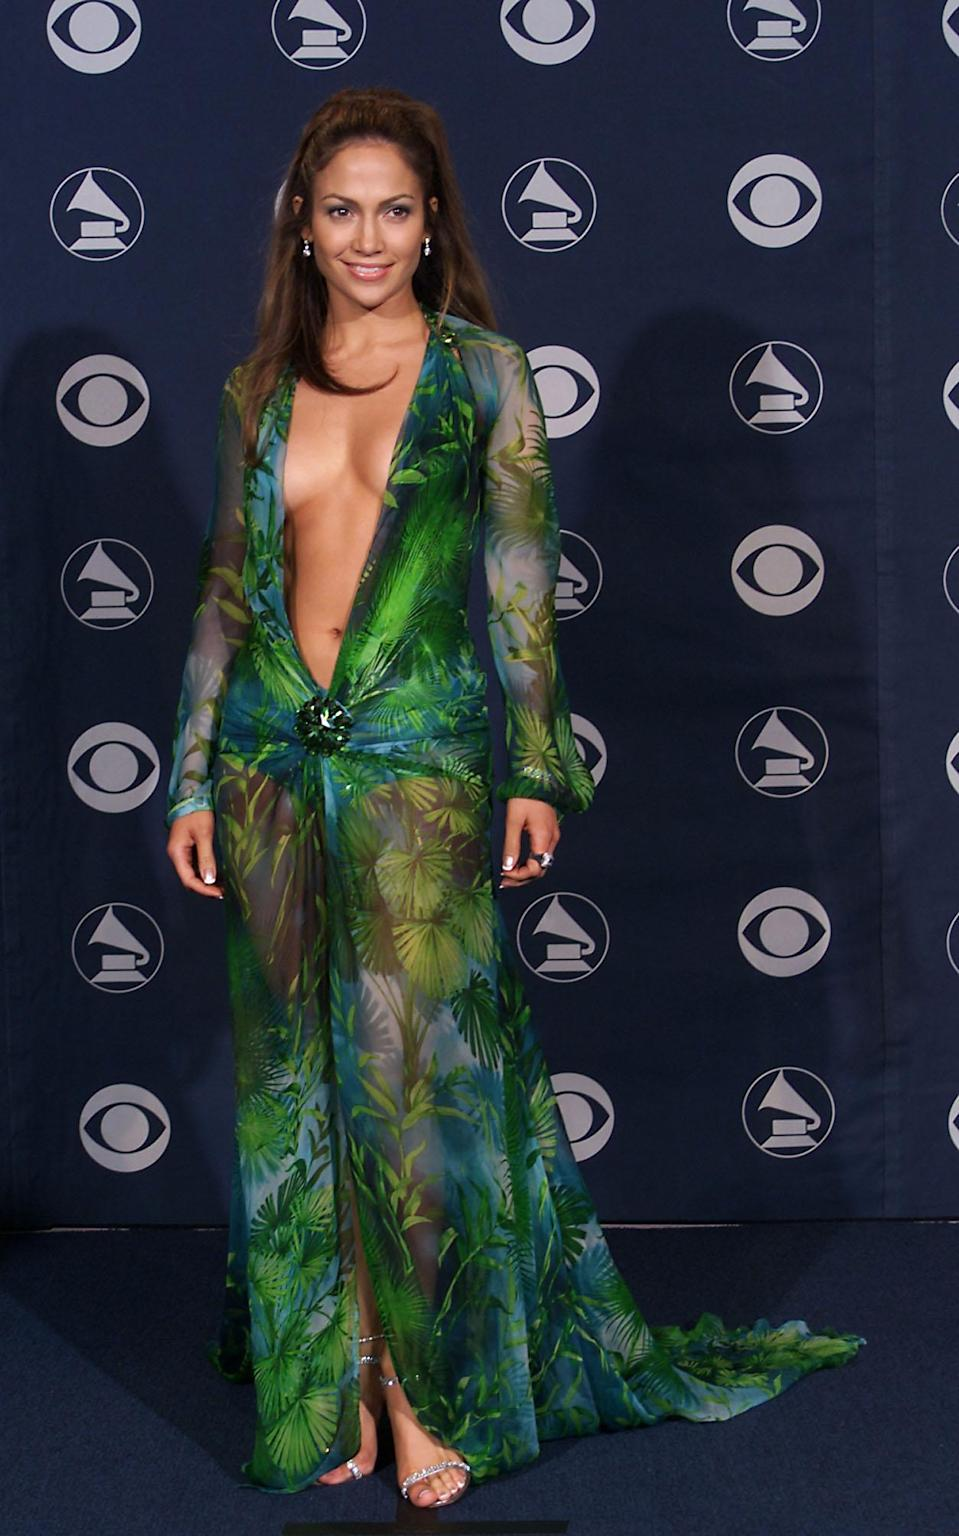 Jennifer Lopez wears her famous Versace dress at the 42nd Grammy Awards on Feb. 23, 2000, in Los Angeles. (Photo: Scott Gries/ImageDirect)